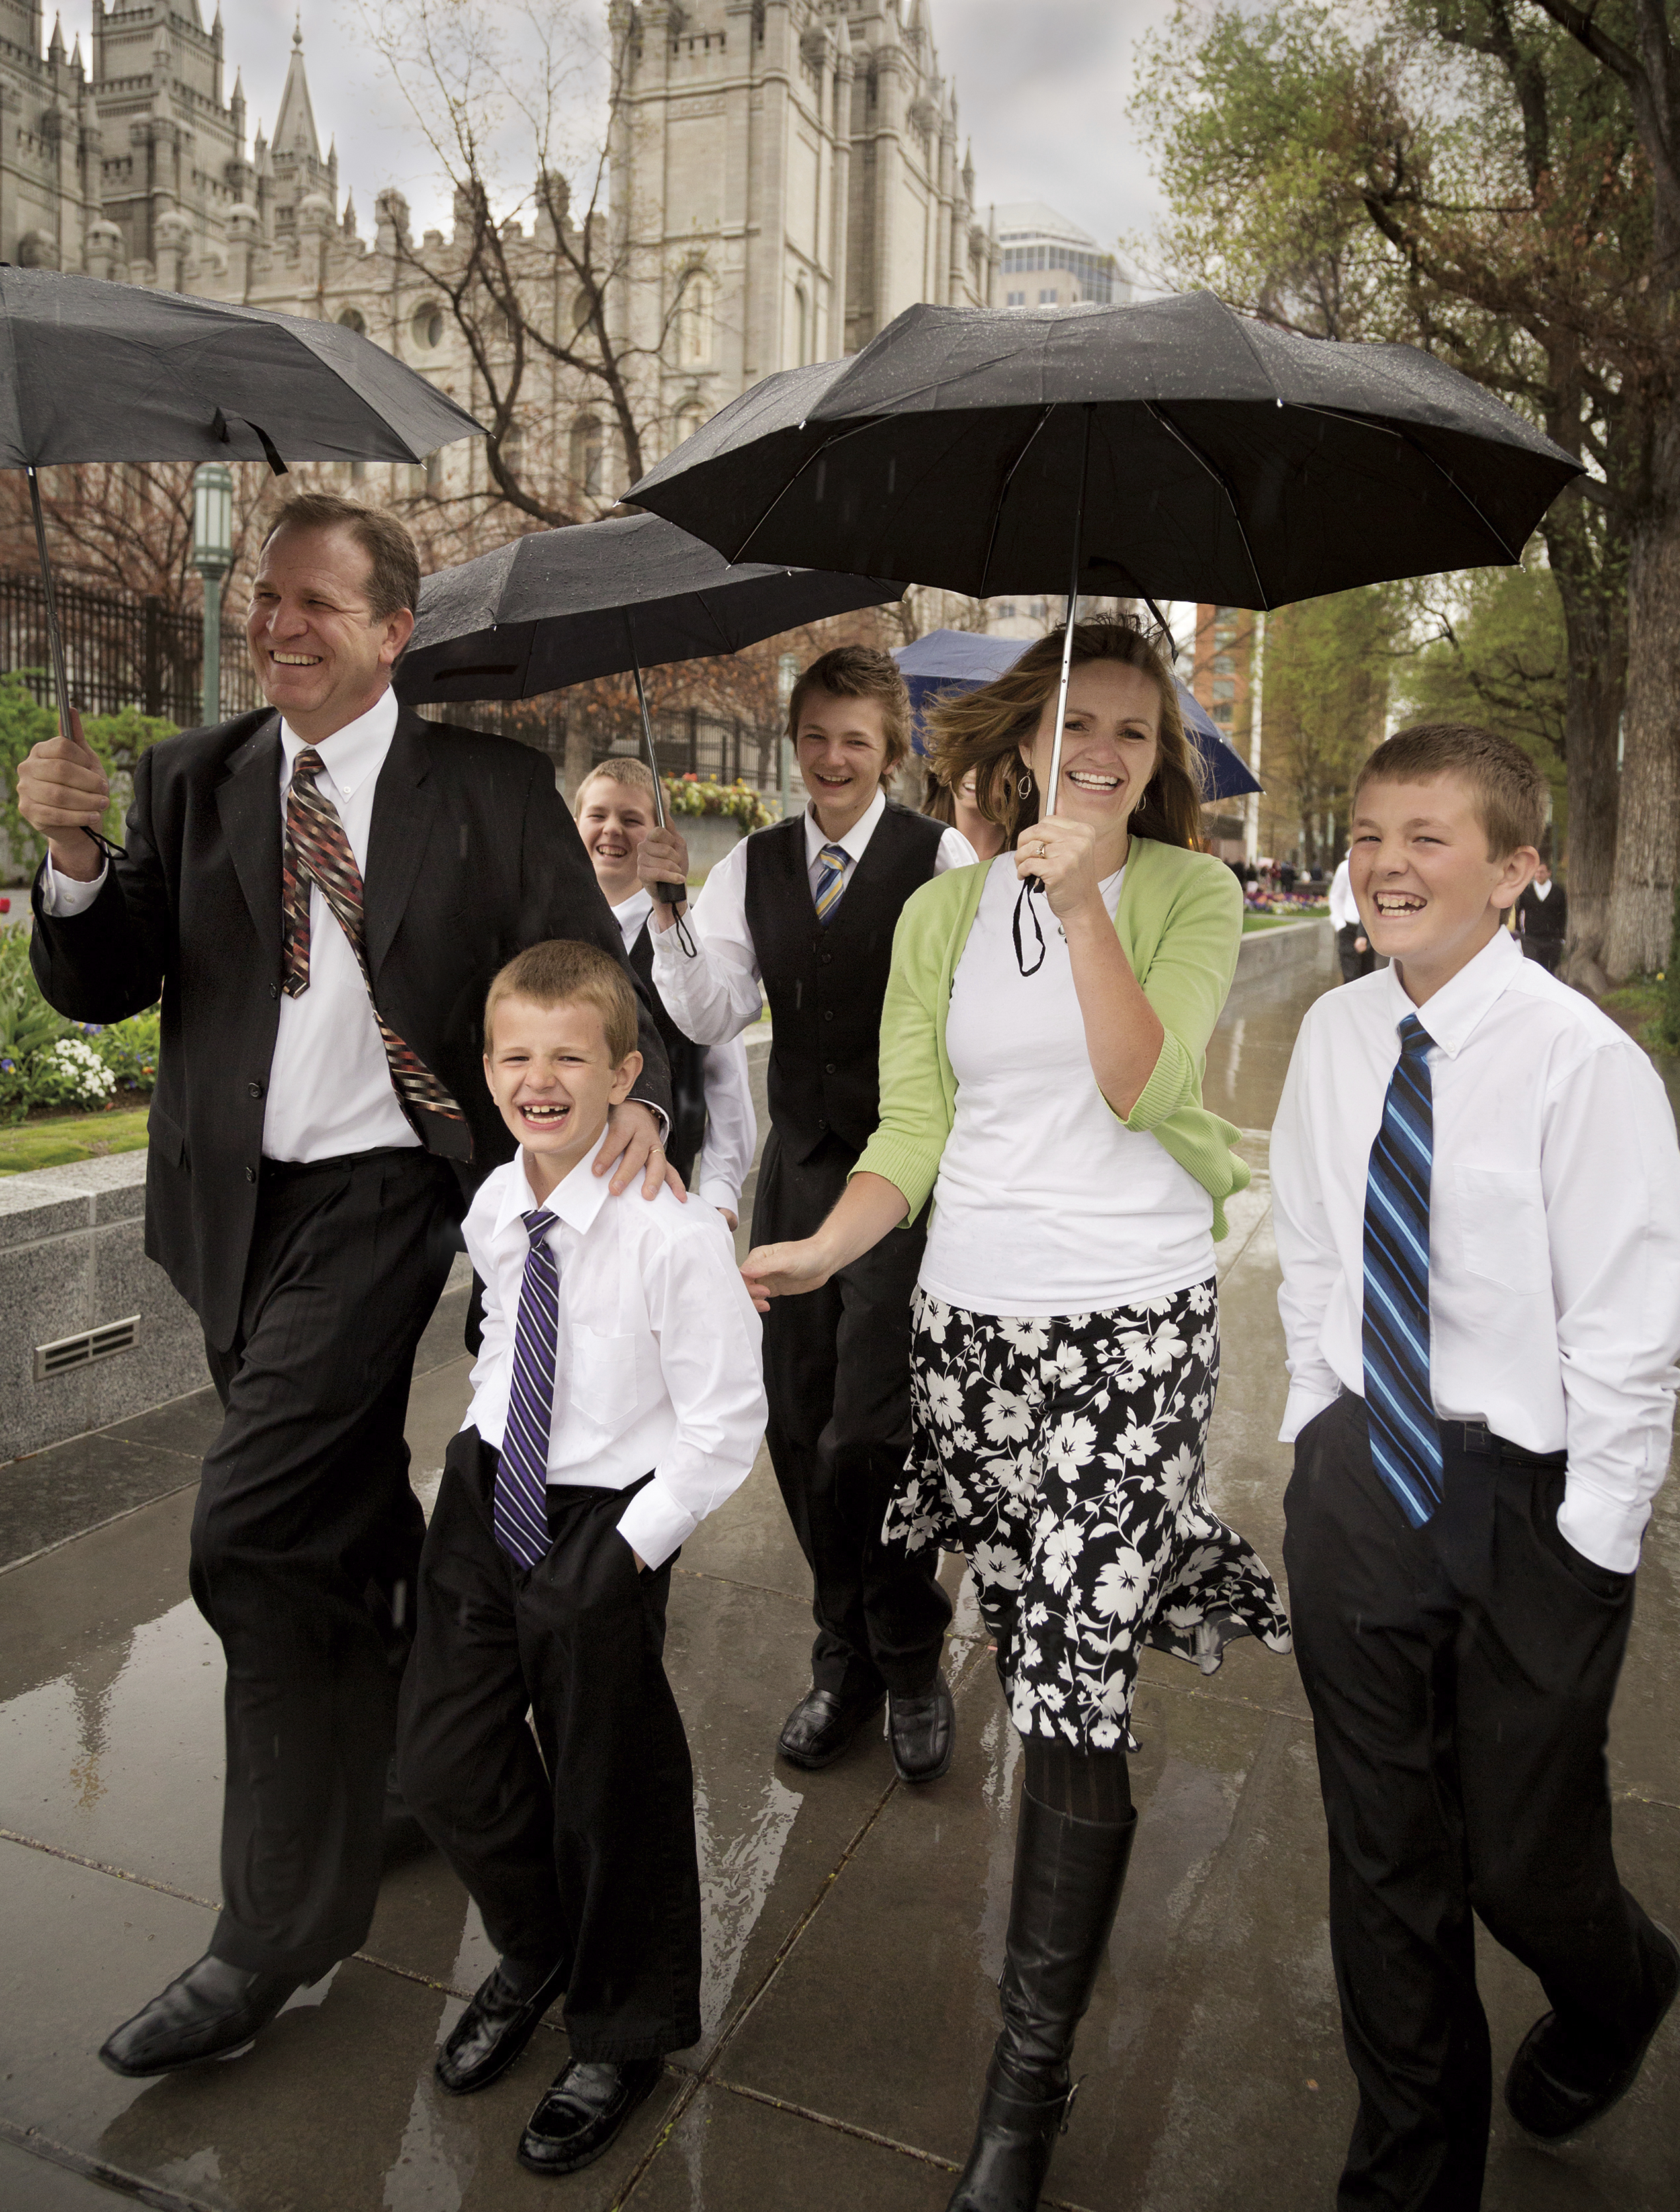 A family holding umbrellas as they walk through rain to the Conference Center.